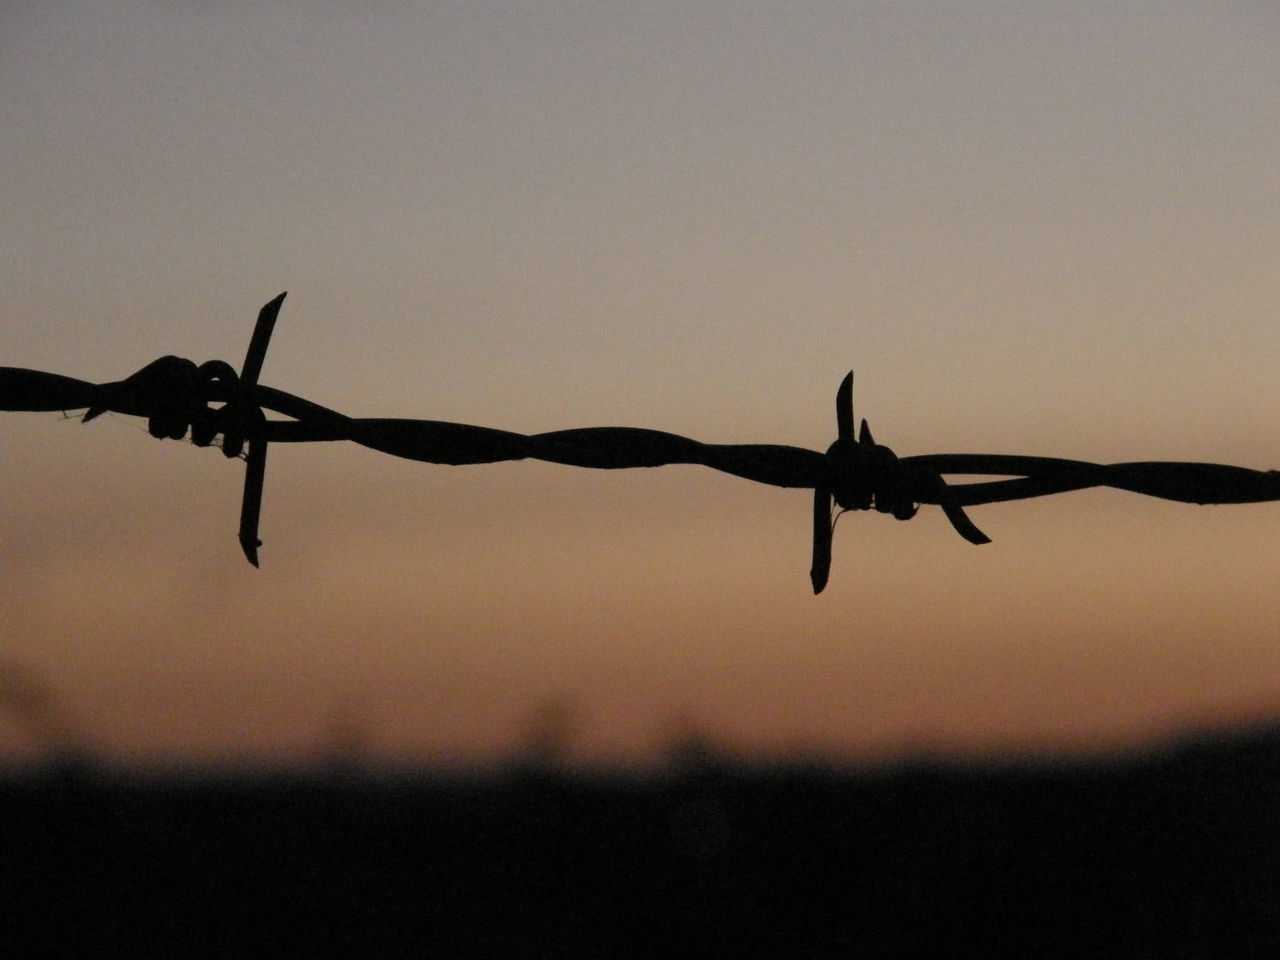 protection, barbed wire, security, safety, metal, silhouette, outdoors, razor wire, sunset, danger, spiked, close-up, focus on foreground, sky, no people, clear sky, low angle view, exclusion, day, nature